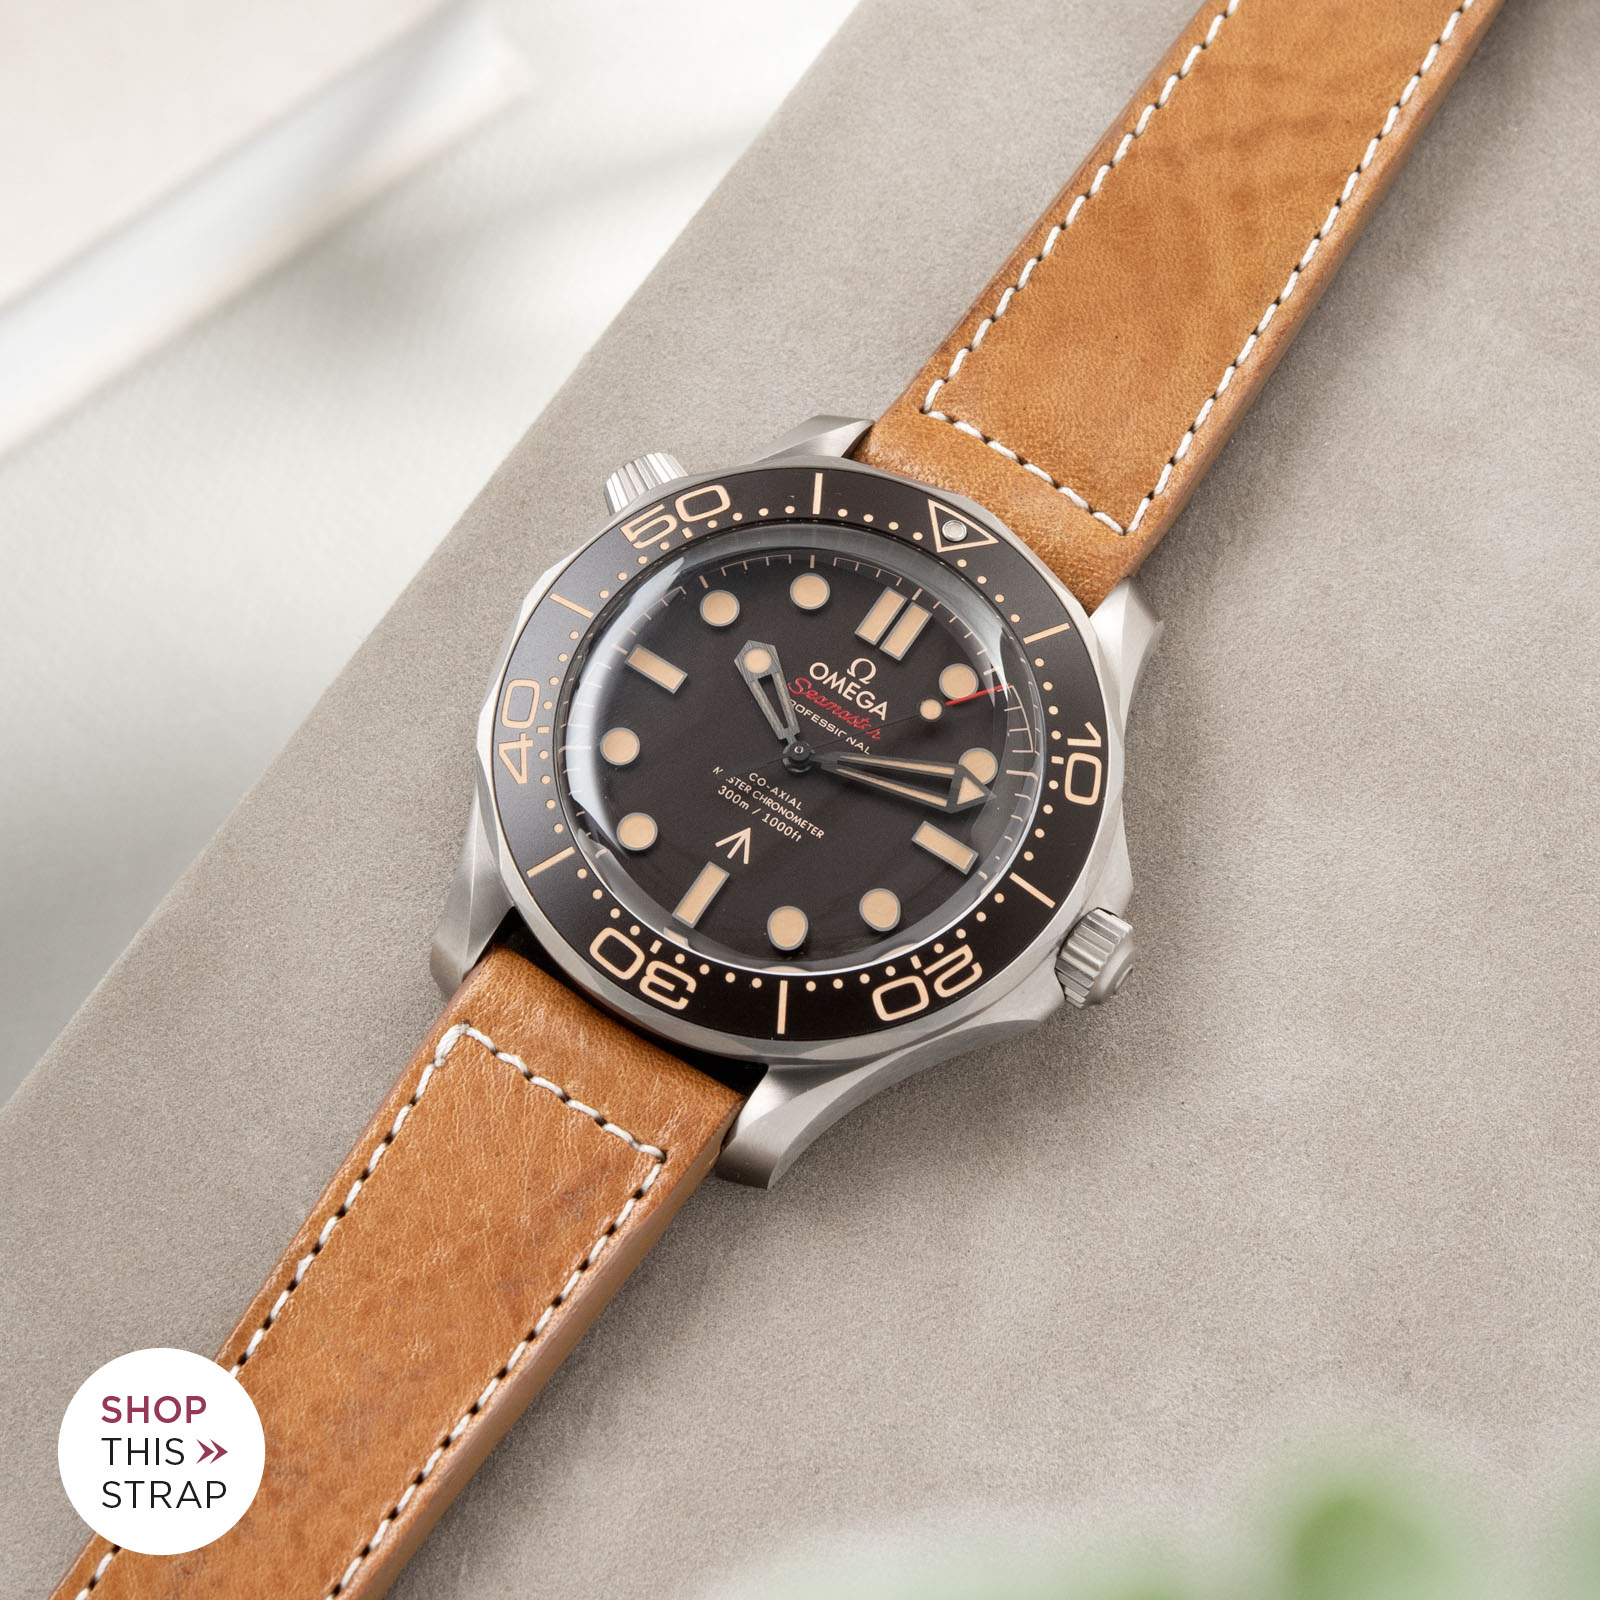 Bulang and Sons_Strapguide_Omega Seamaster_GILT BROWN LEATHER WATCH STRAP_004